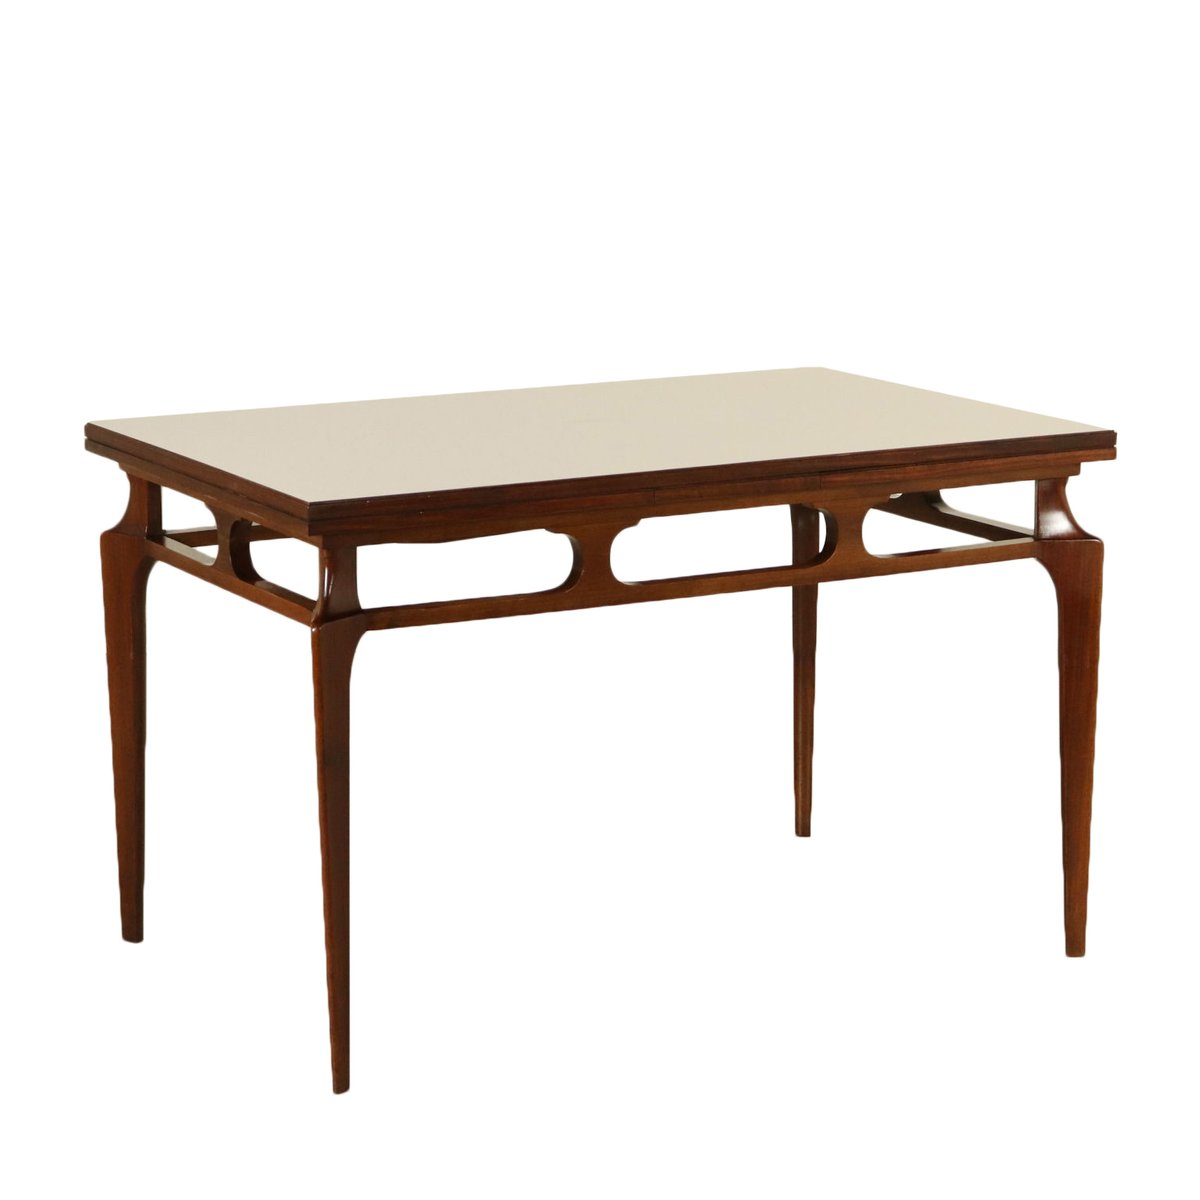 Italian Stained Beech Formica Extendable Dining Table S For - Extendable beech dining table